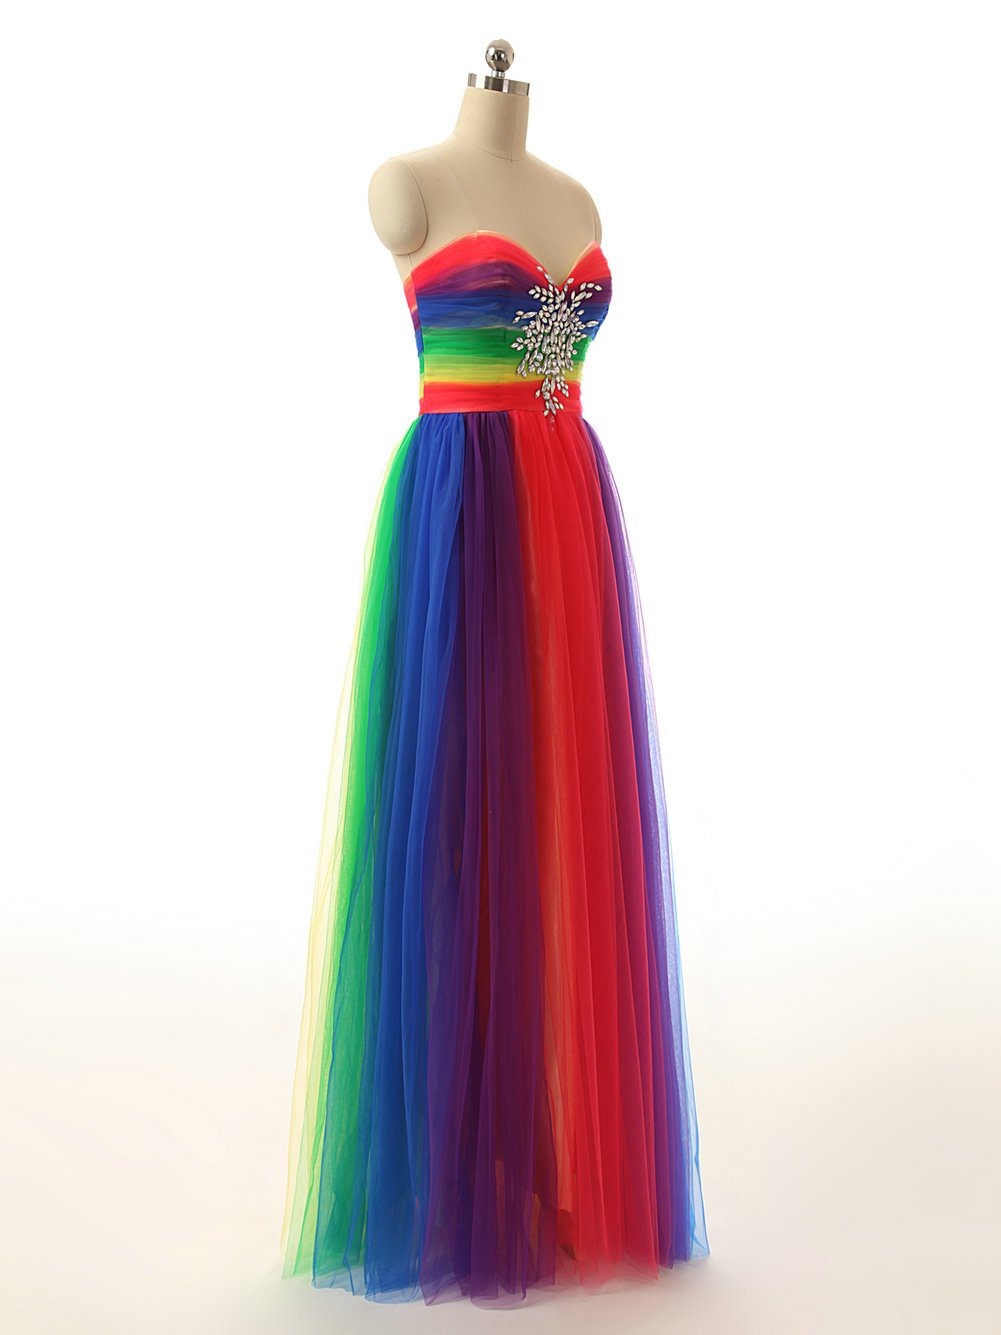 100% genuine how to choose on feet images of JAEDEN Colorful Rainbow Evening Dresses Long Prom Gown Sweetheart  Multicoloured Colorful US22W